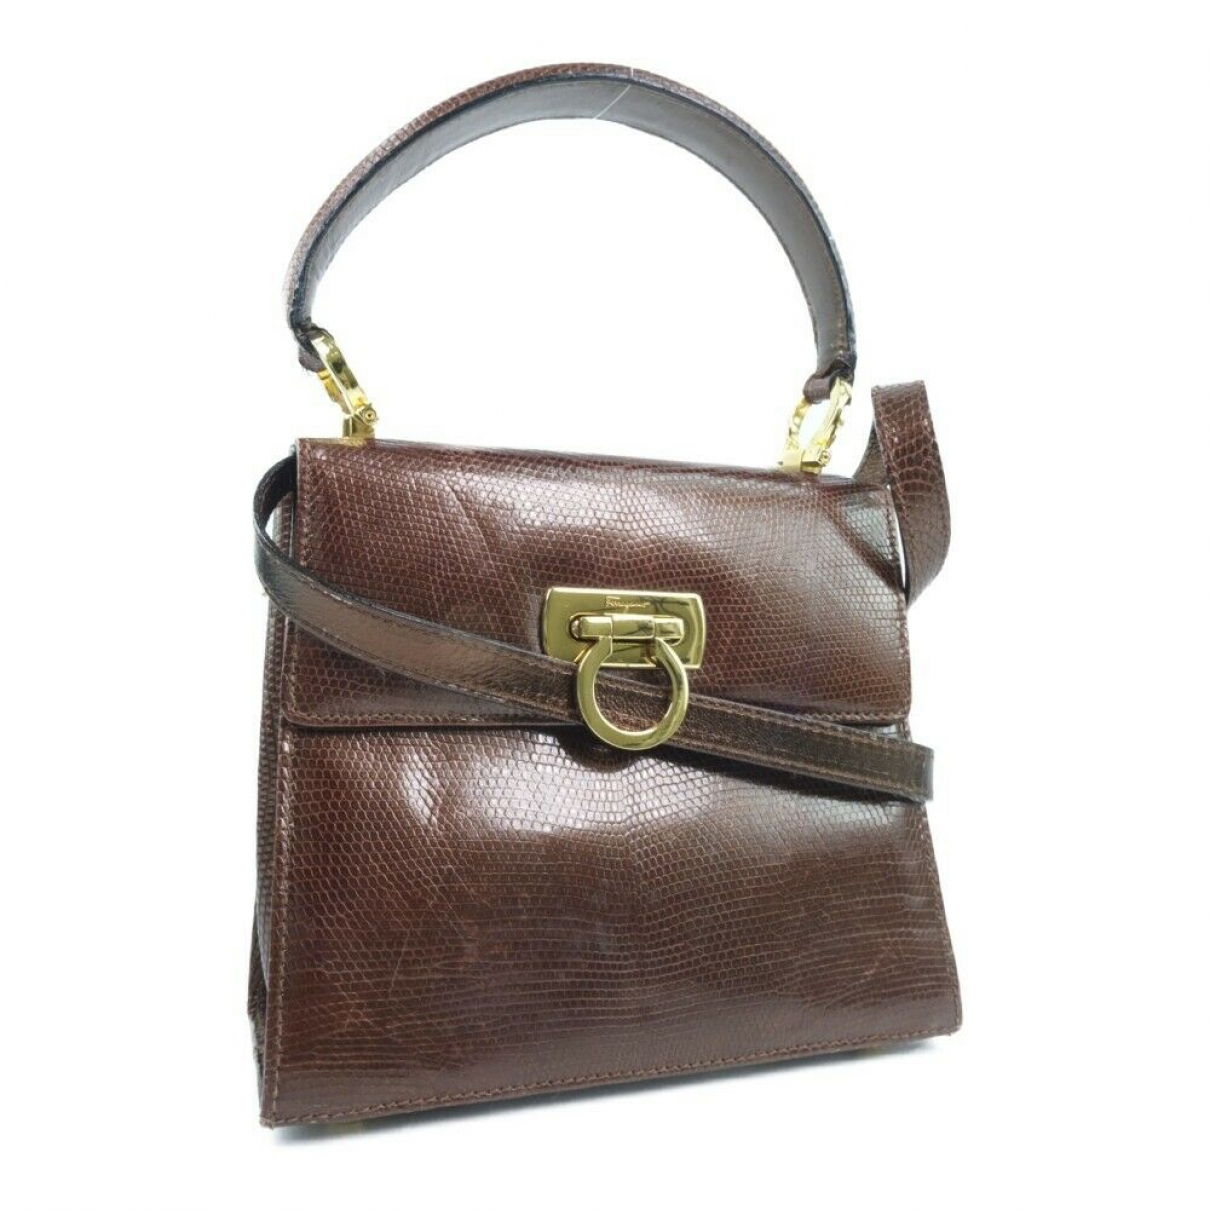 Salvatore Ferragamo \N Brown Leather handbag for Women \N